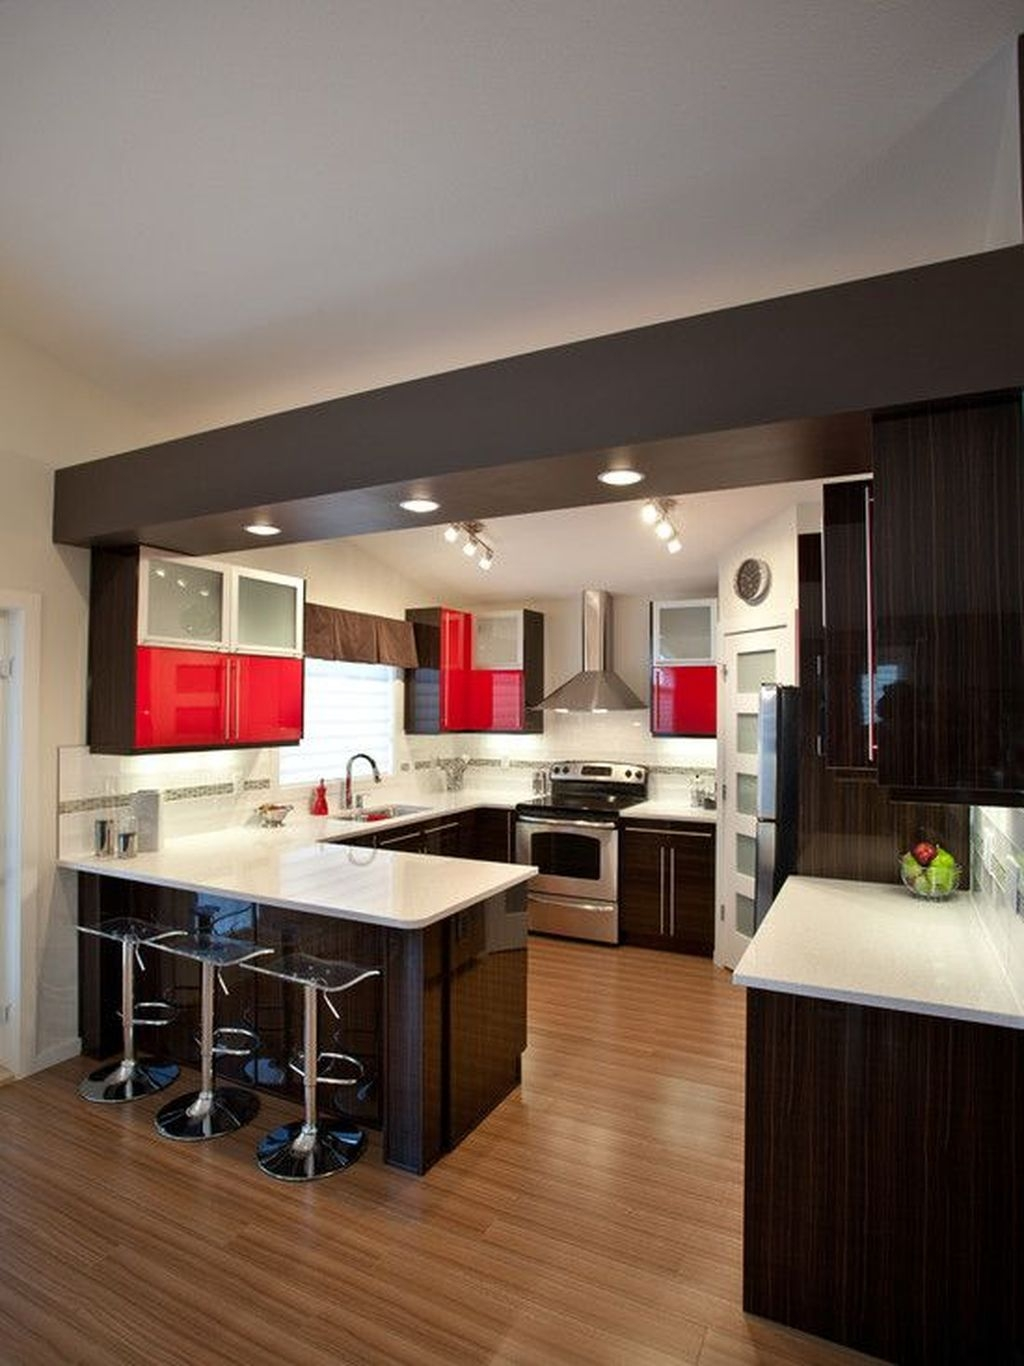 Stunning Modern Kitchen Design 04